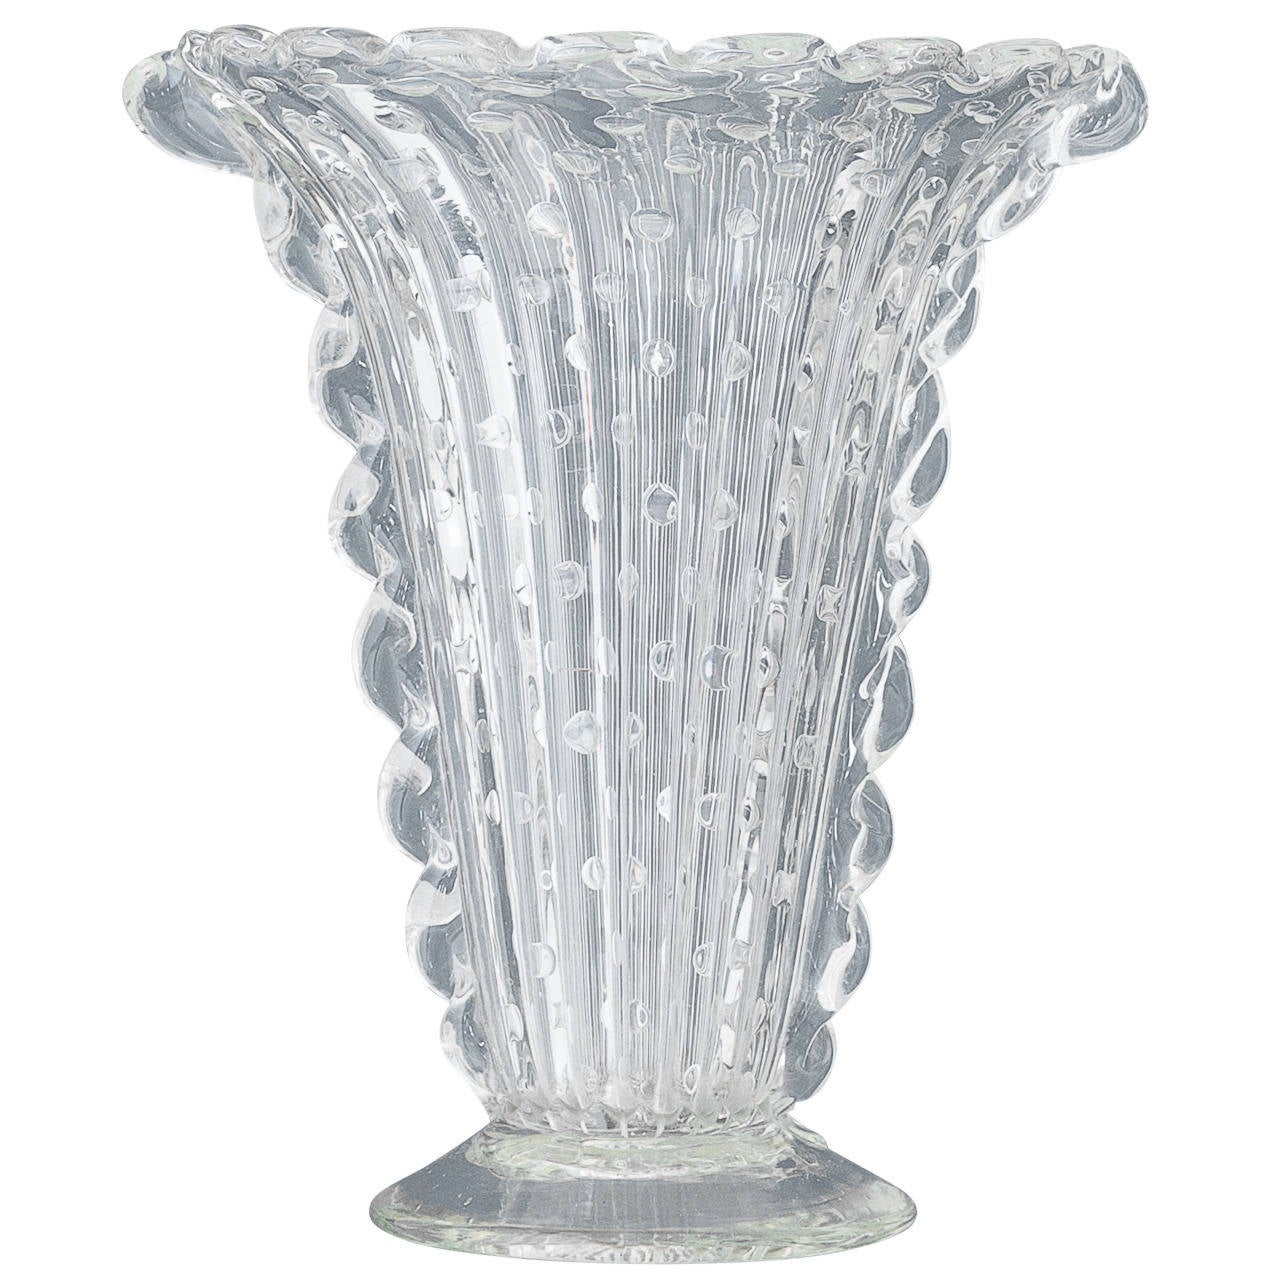 vintage murano clear glass vase at 1stdibs. Black Bedroom Furniture Sets. Home Design Ideas